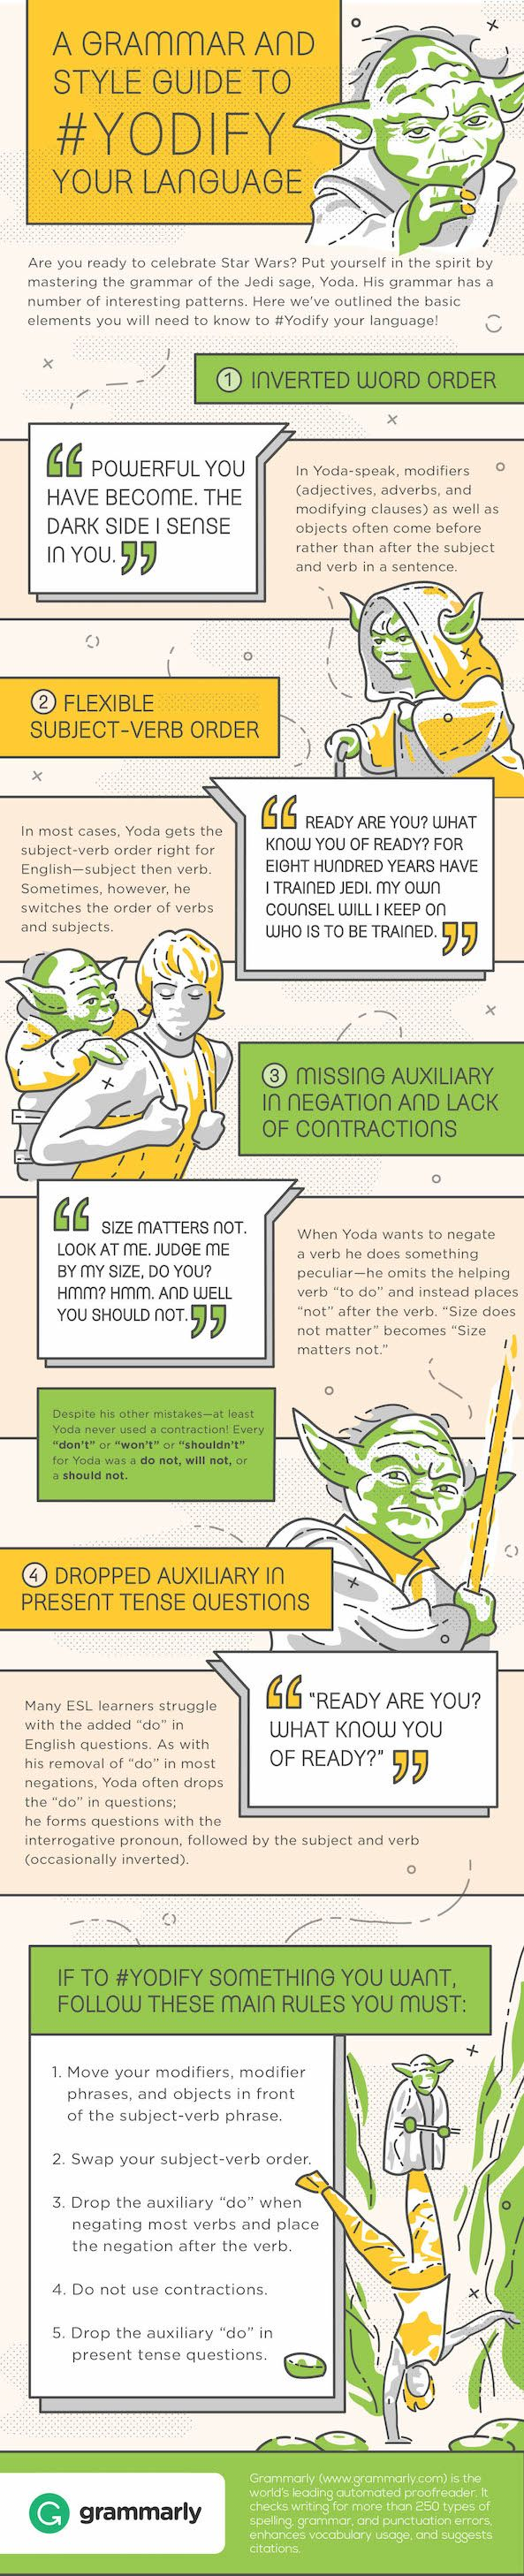 Star Wars Grammar By Yoda  Terrific infographic, this is. Learn much, you will.